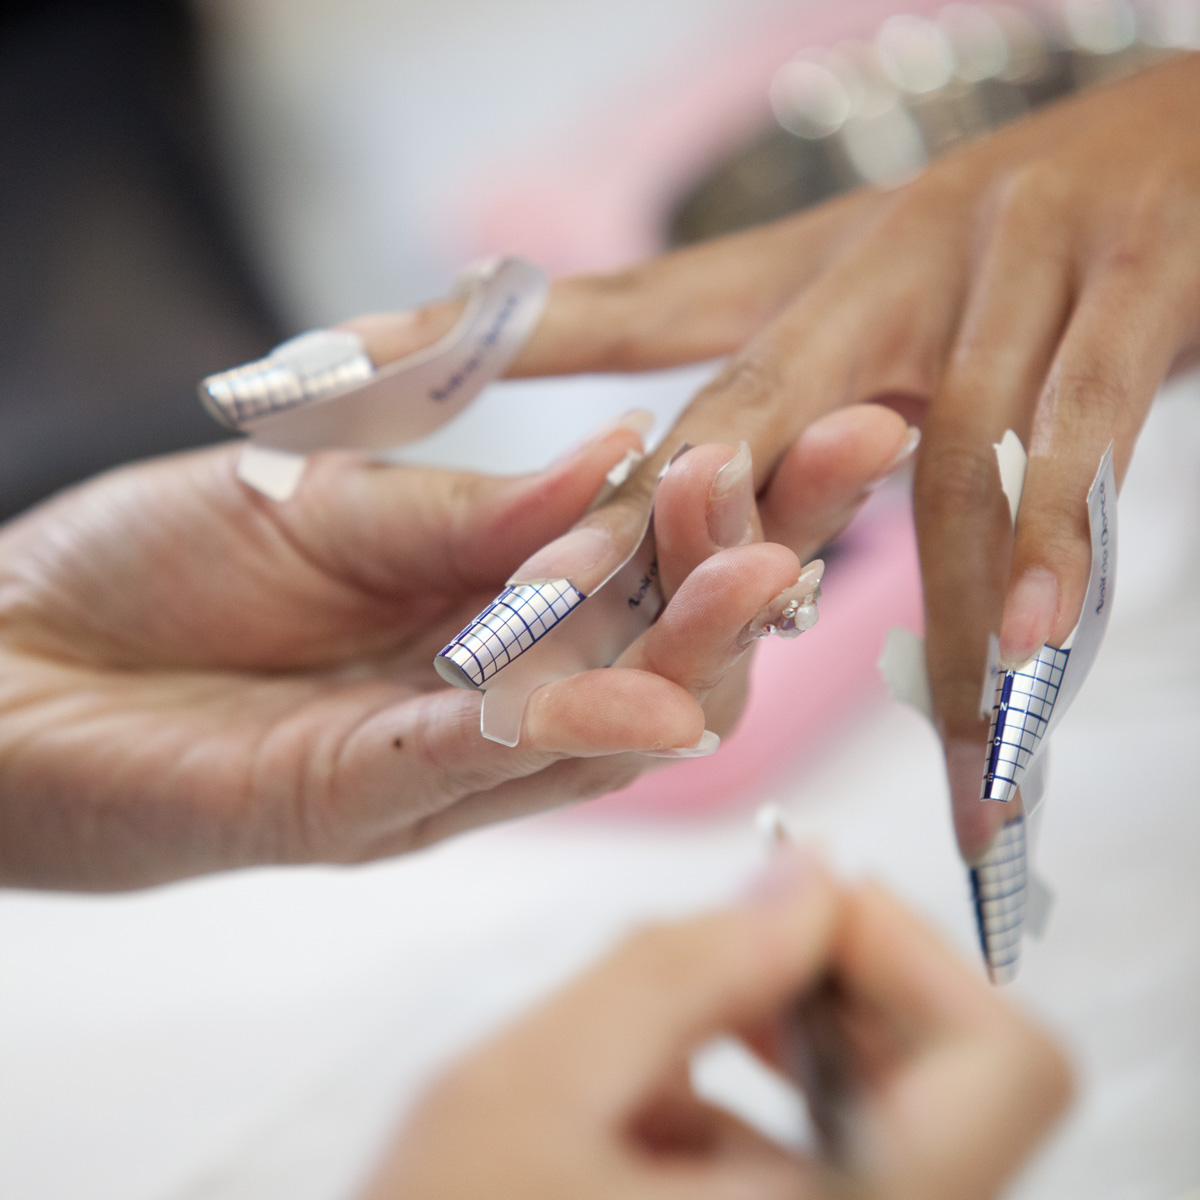 Find A Nail Technician: Top 10 Ways To Find Nail Tech Jobs